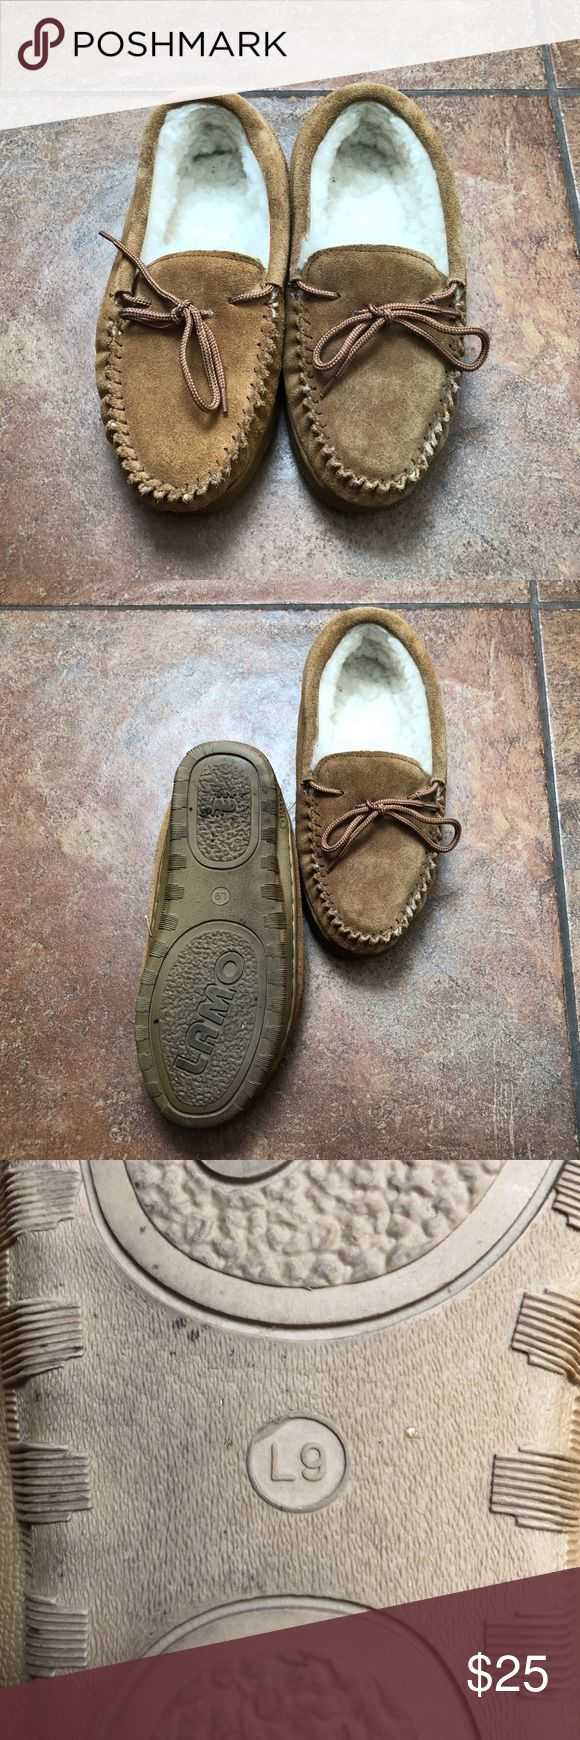 Lamo Sheepskin Slippers. Size 9L Cozy Lamo moccasin slippers, very lightly used.  Super soft with durable soles. These moccasins are awesome for both indoor and outdoor wear! Lamo Shoes Moccasins